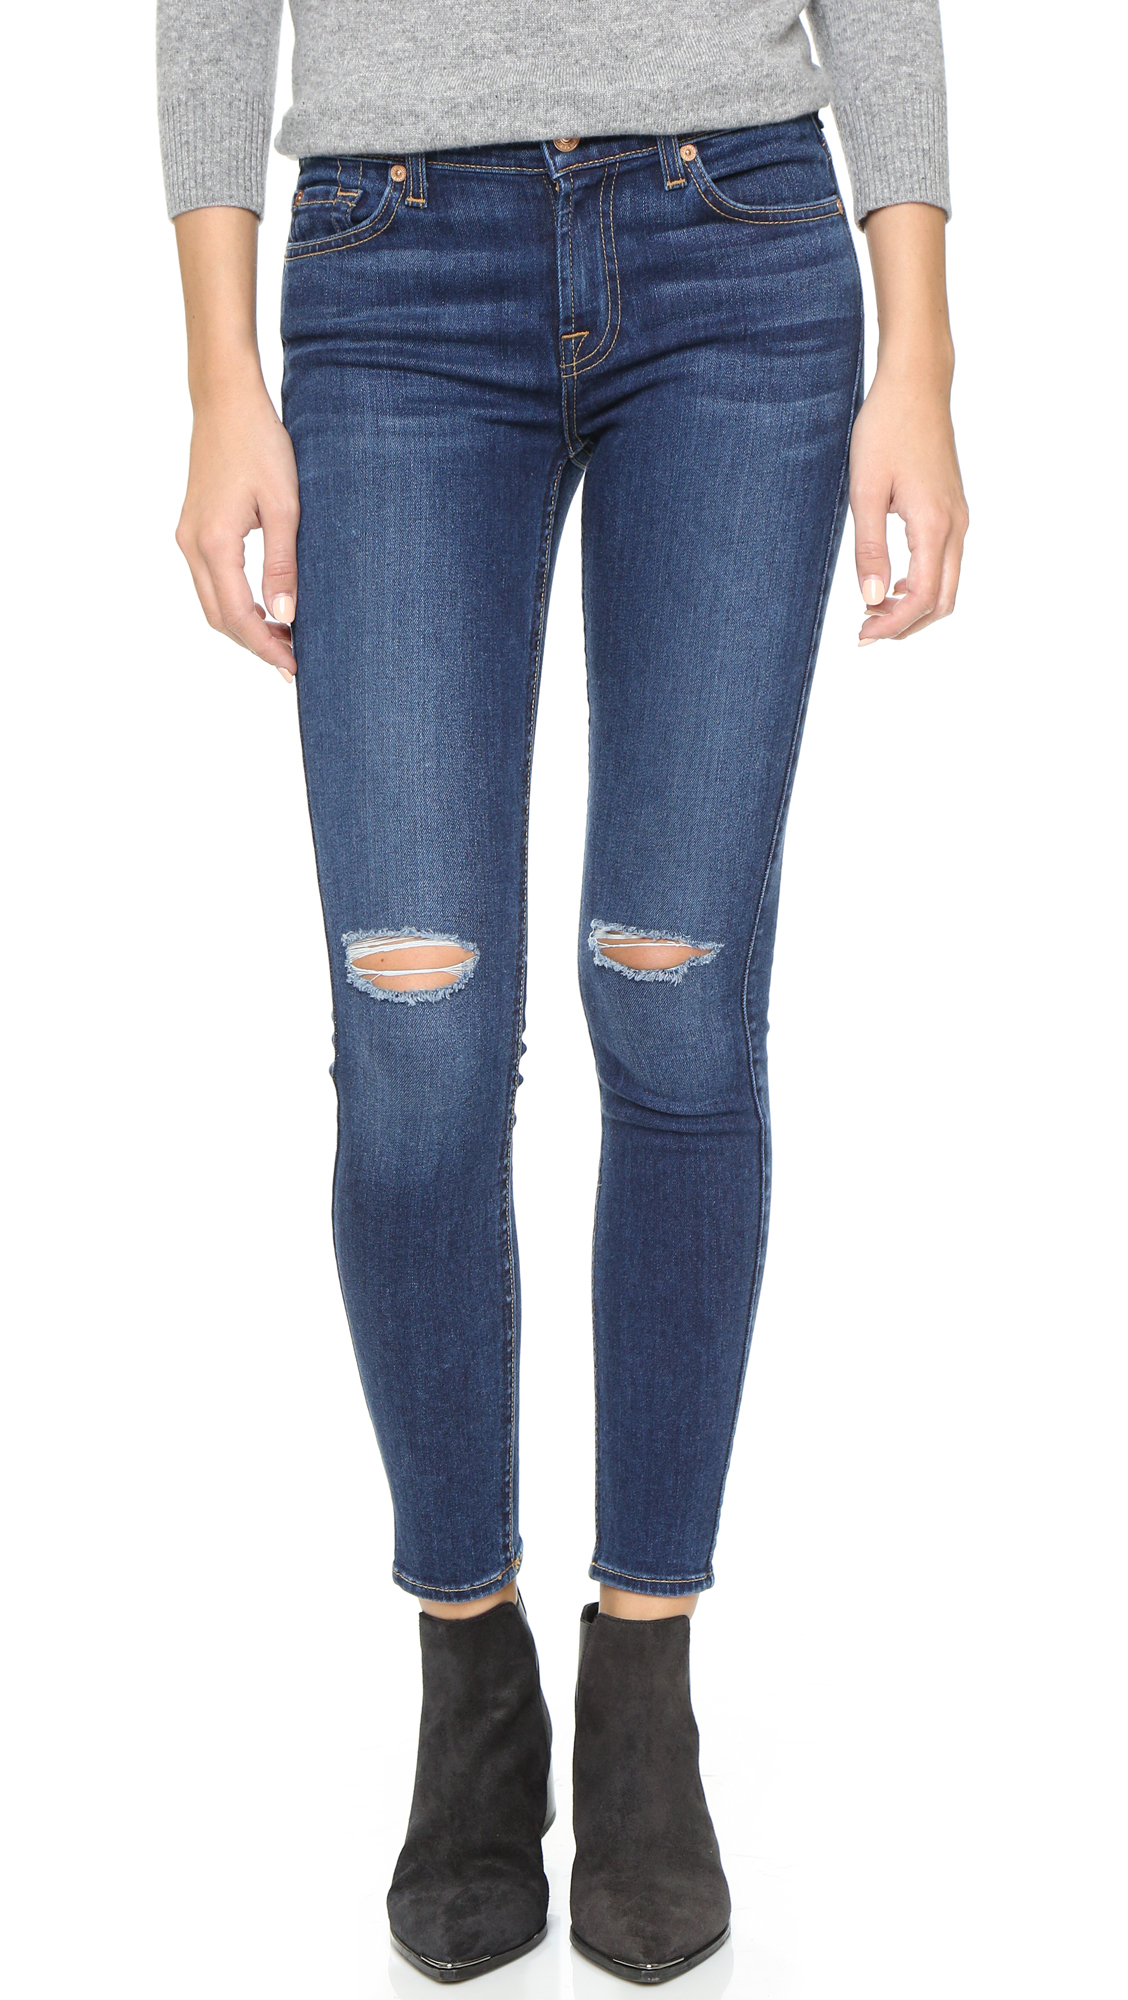 7 For All Mankind The Ankle Skinny Jeans | 15% off first app ...